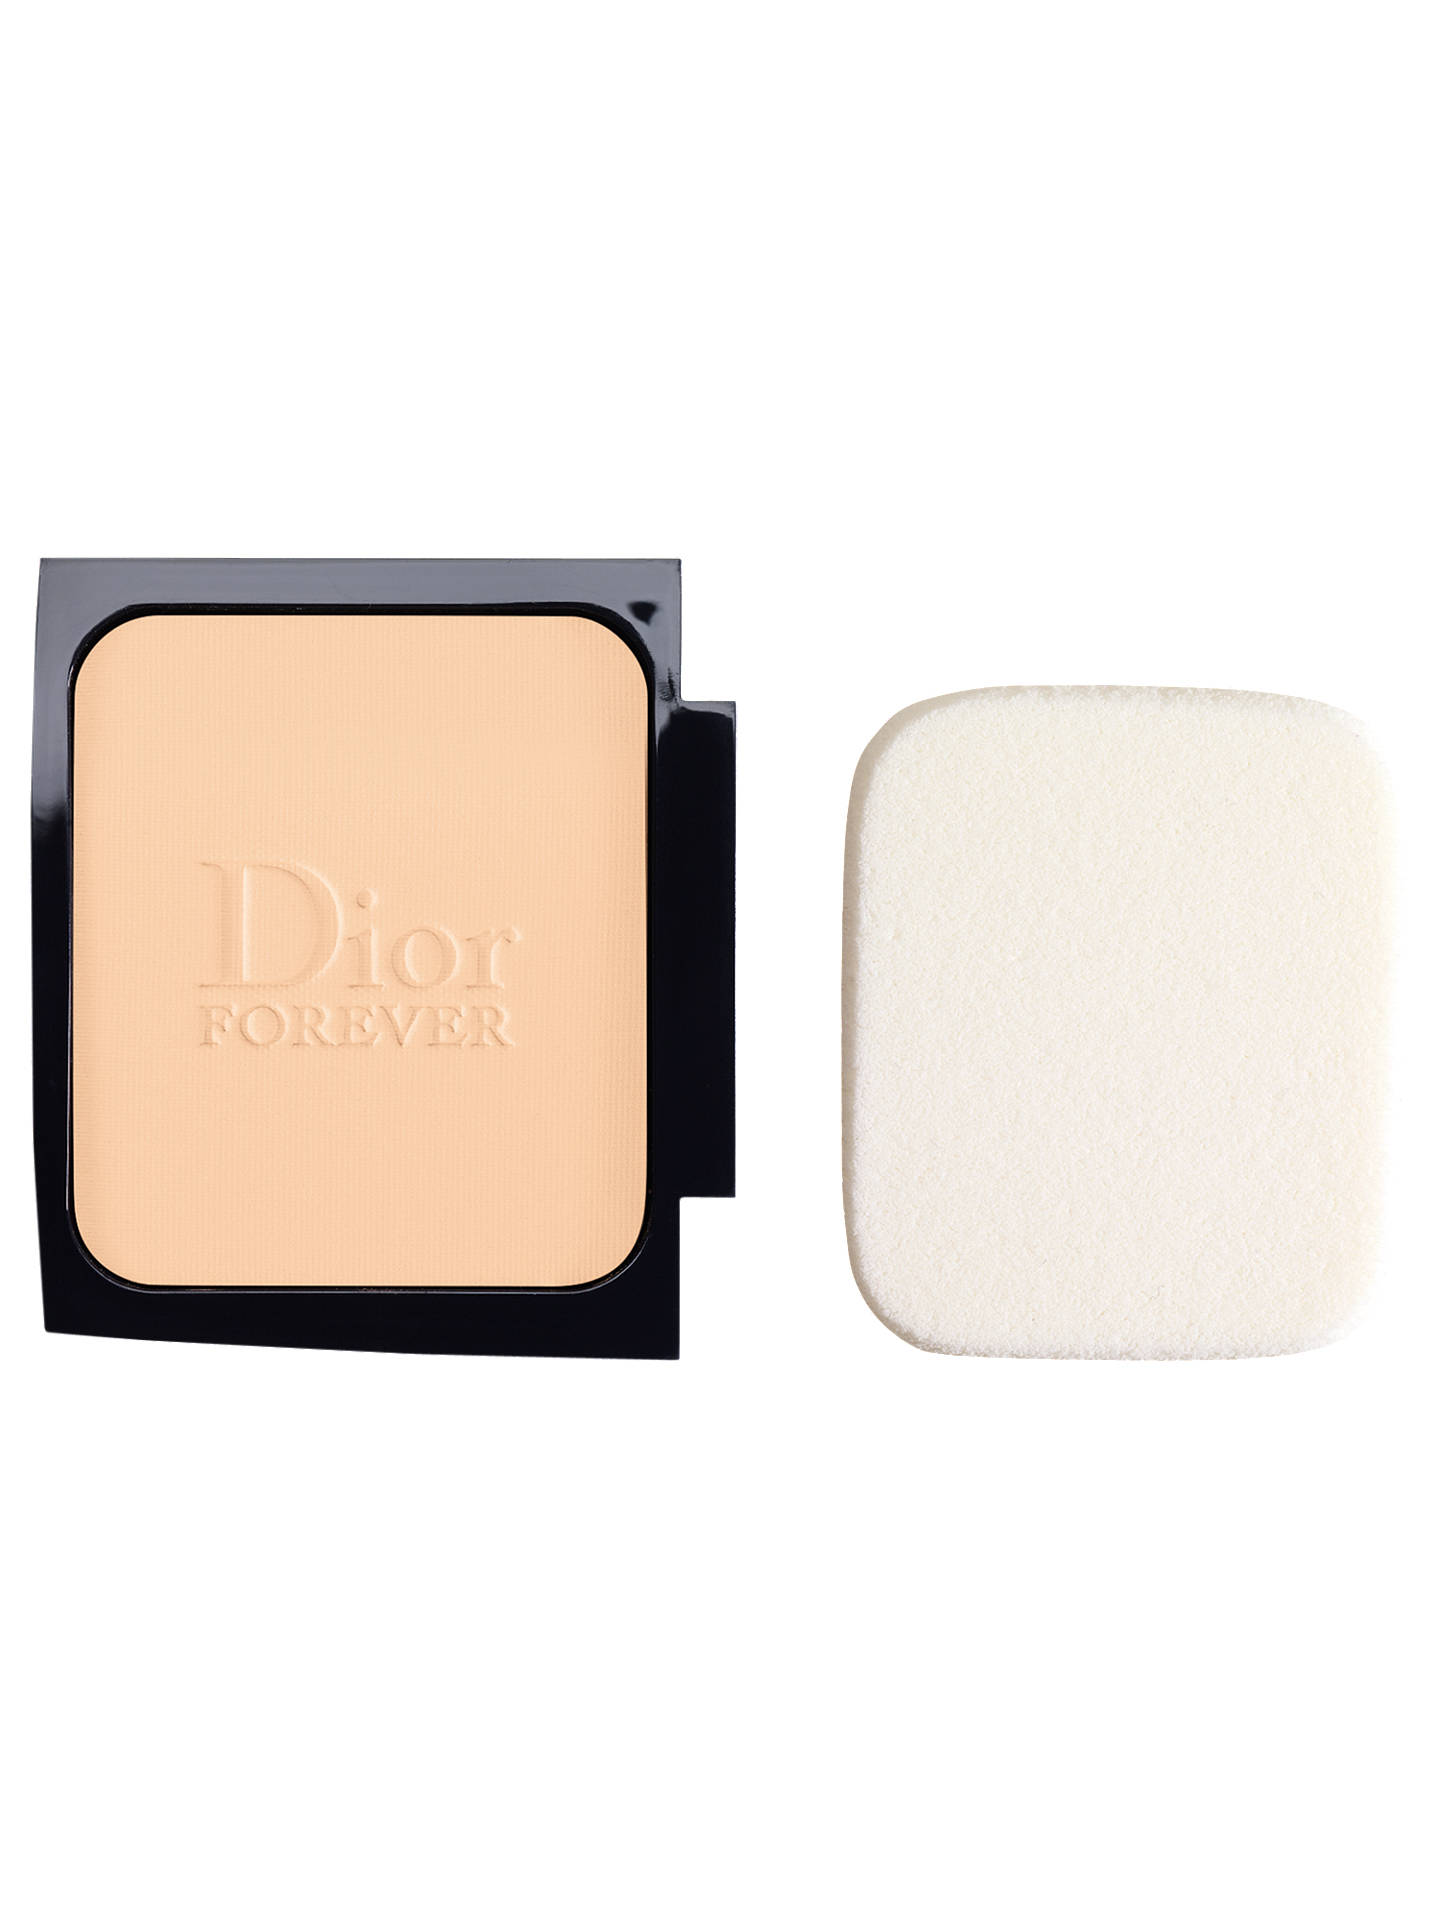 Dior Diorskin Forever Extreme Compact Foundation Refill Ivory 010